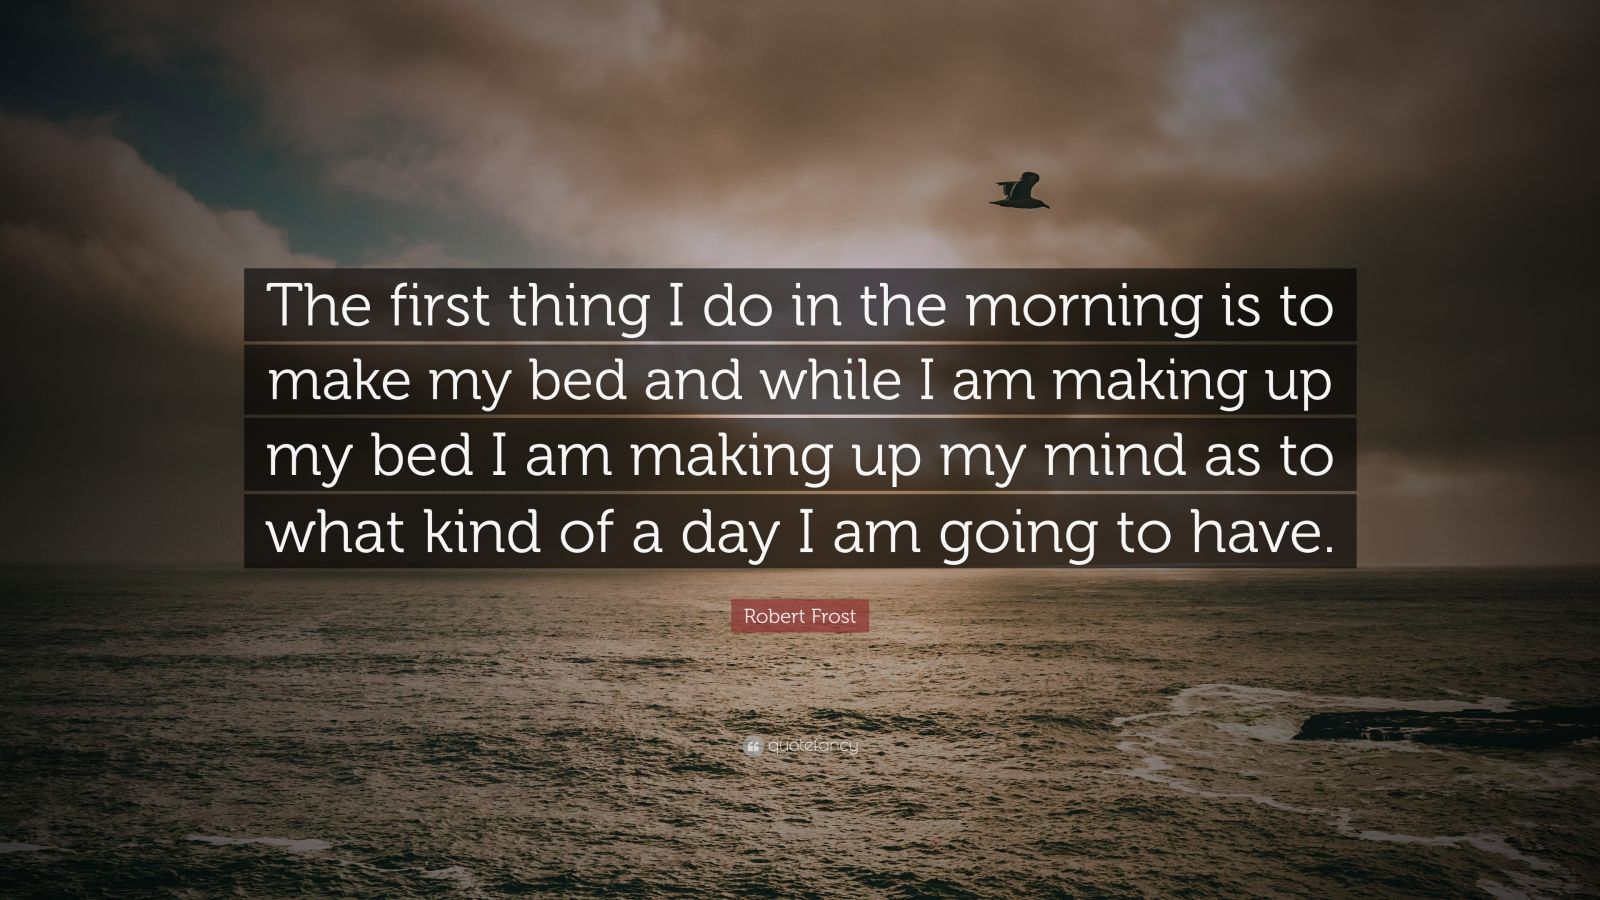 """Robert Frost Quote: """"The first thing I do in the morning is to make my bed and while I am making up my bed I am making up my mind as to what kind of a day I am going to have."""""""